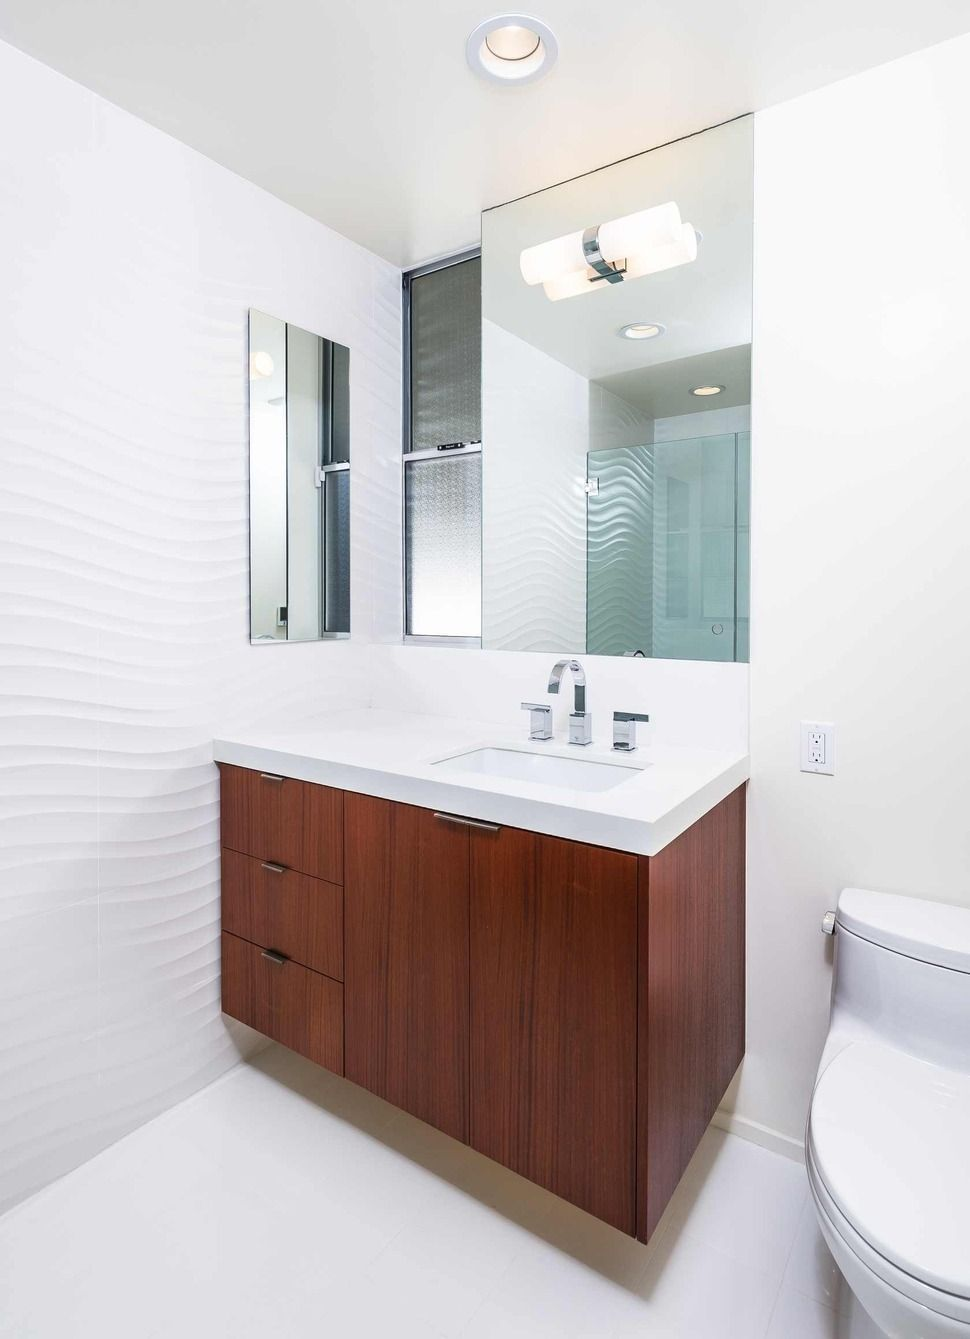 Mid Century Modern Bathroom Design 25 Midcentury Bathroom Design Ideas  Bathroom Tiling Mid